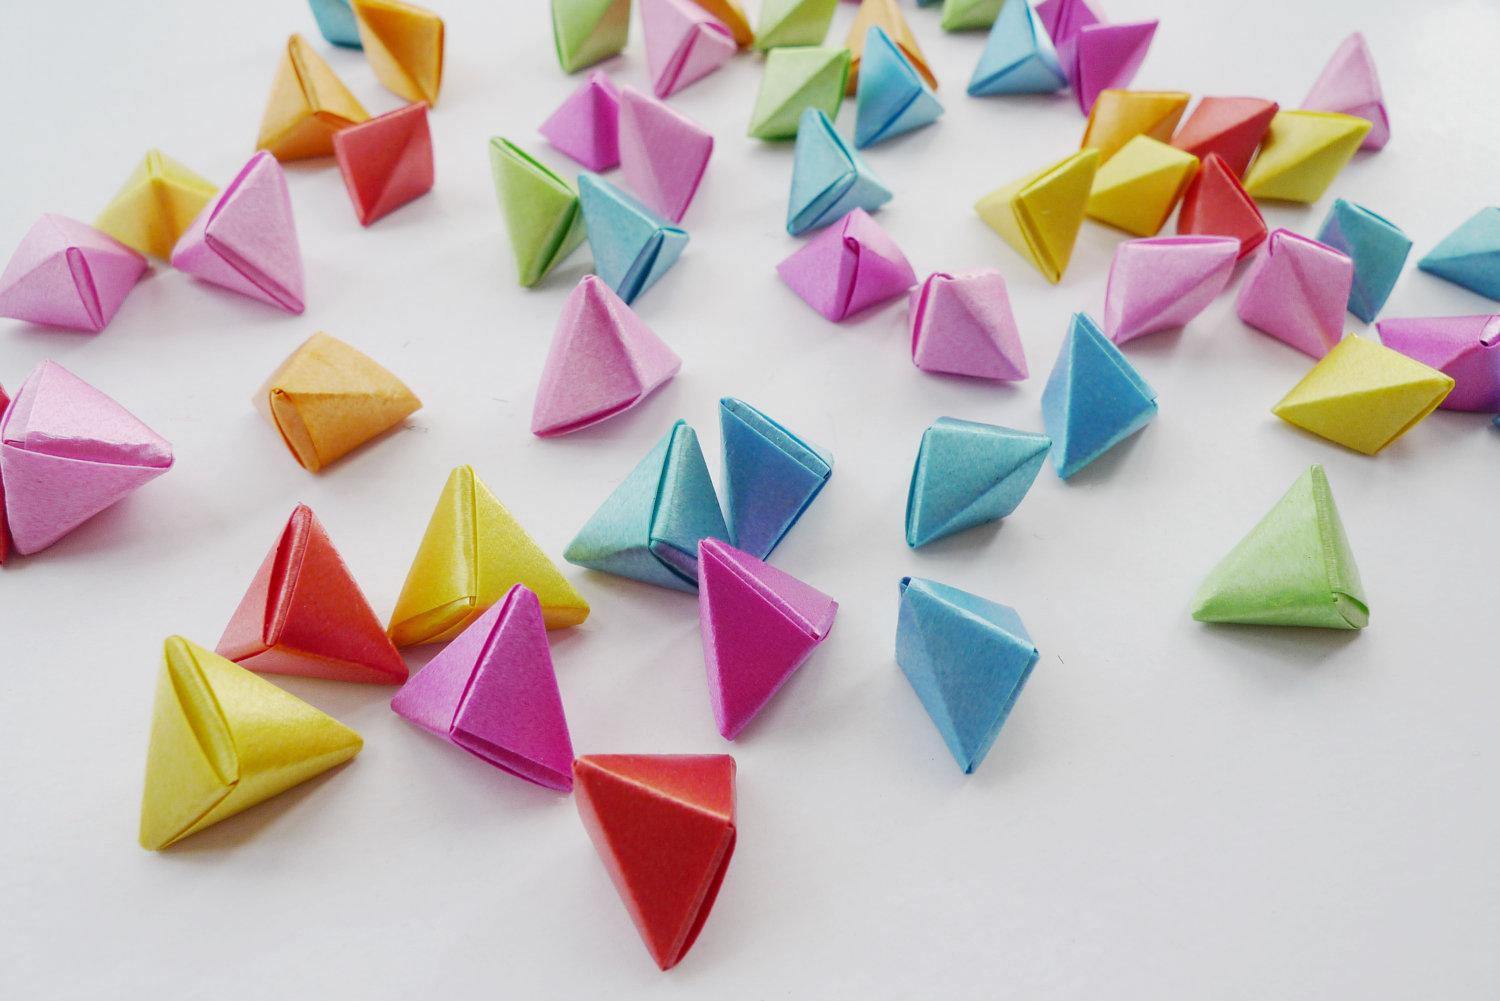 3d Origami Triangles Puzzle Image